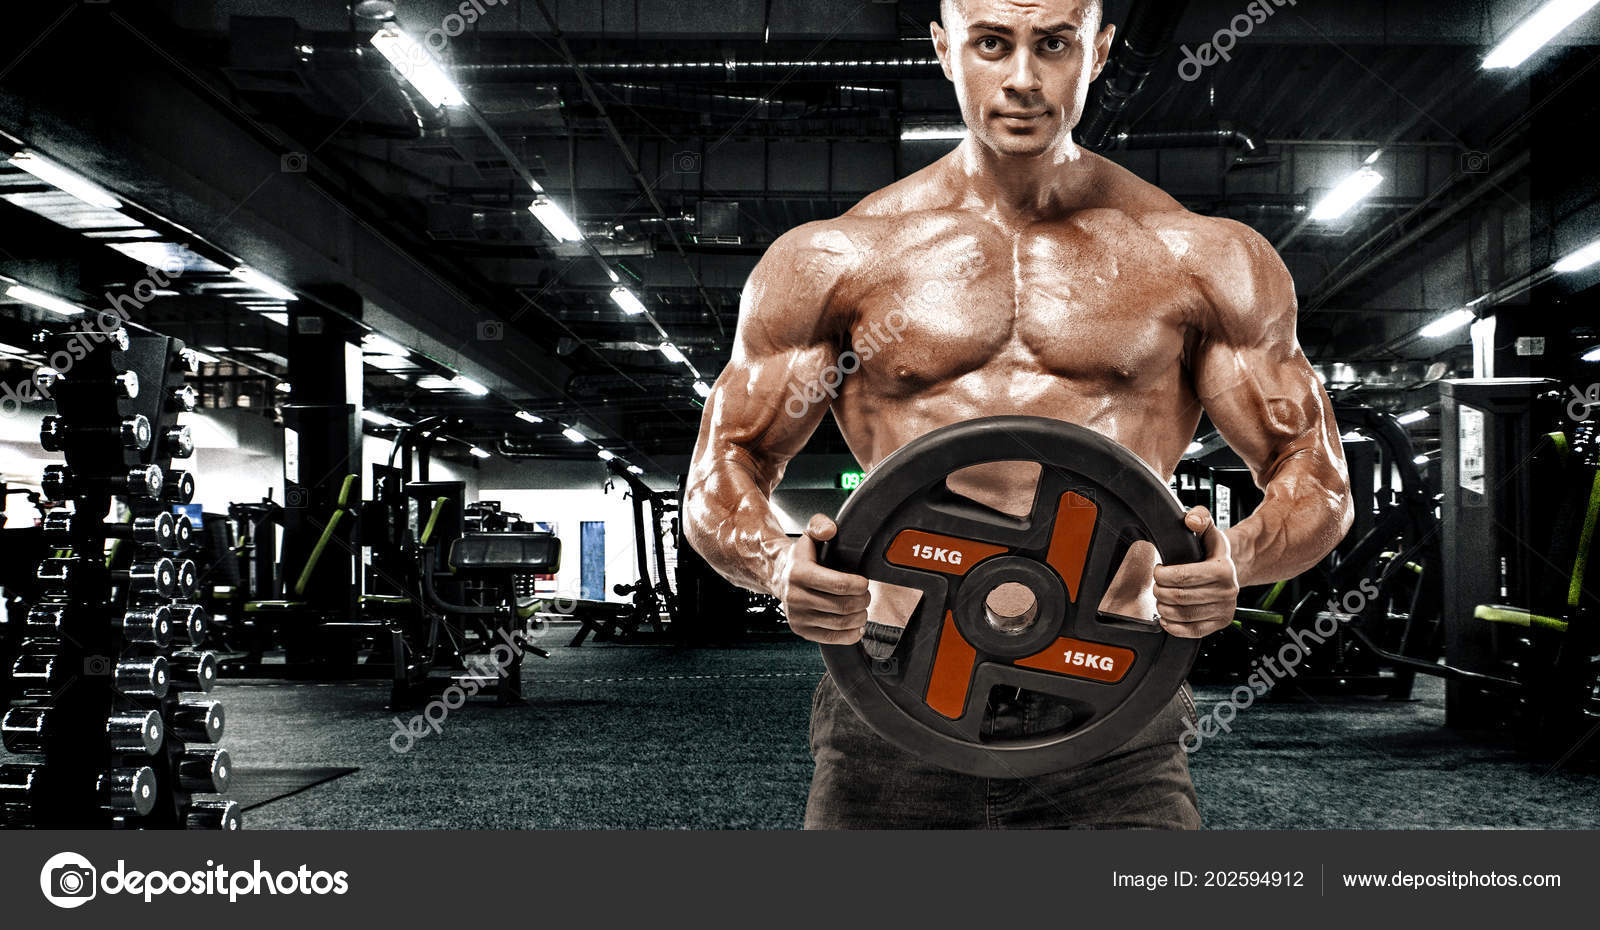 ba78082e62b ... pumping up muscles workout bodybuilding concept background - handsome  men · Athletic shirtless young sports man - fitness model with barbell in  gym.